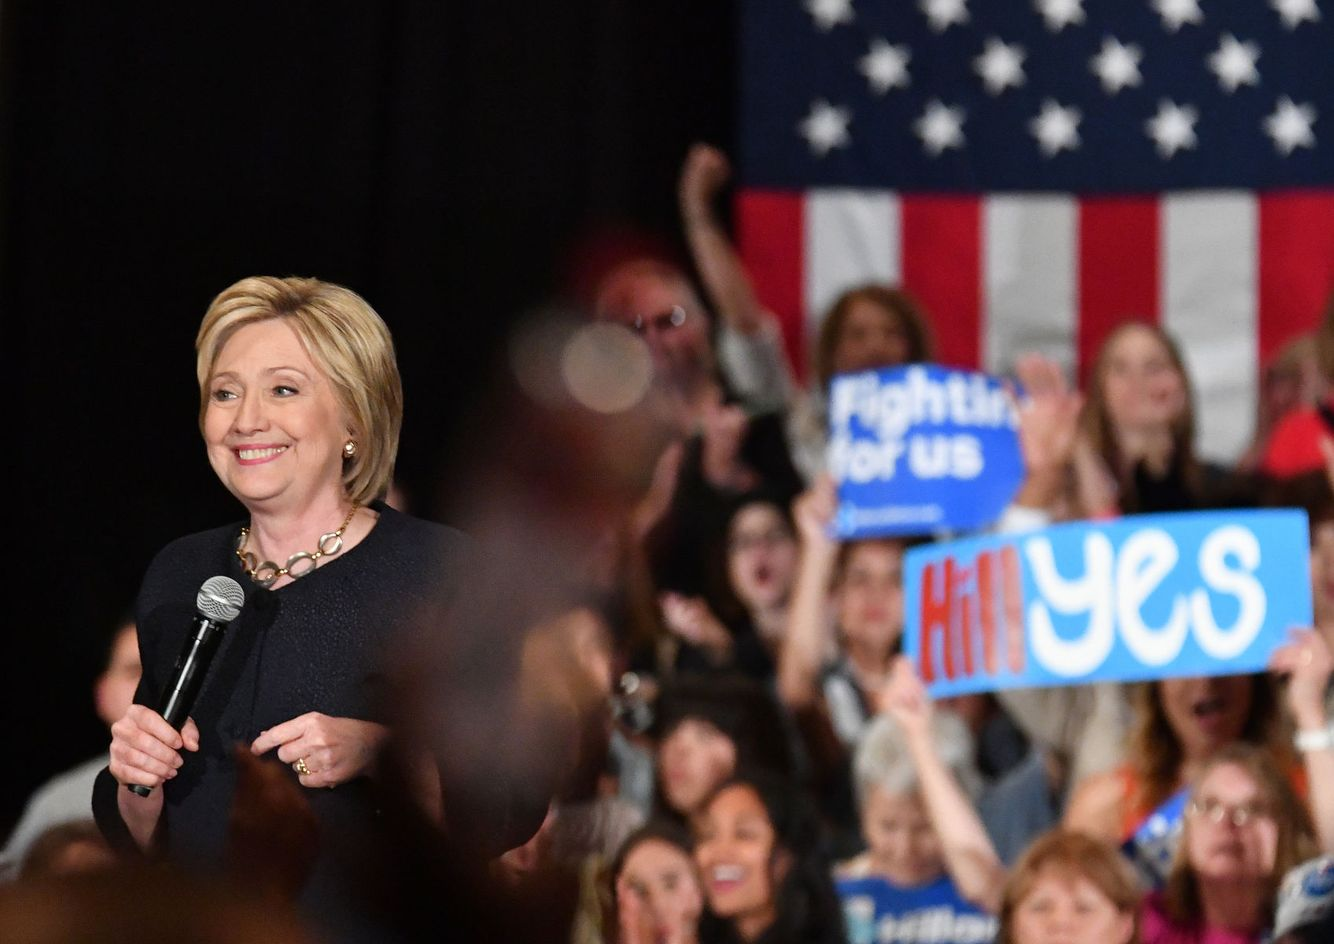 Hillary Clinton speaks during a campaign event.